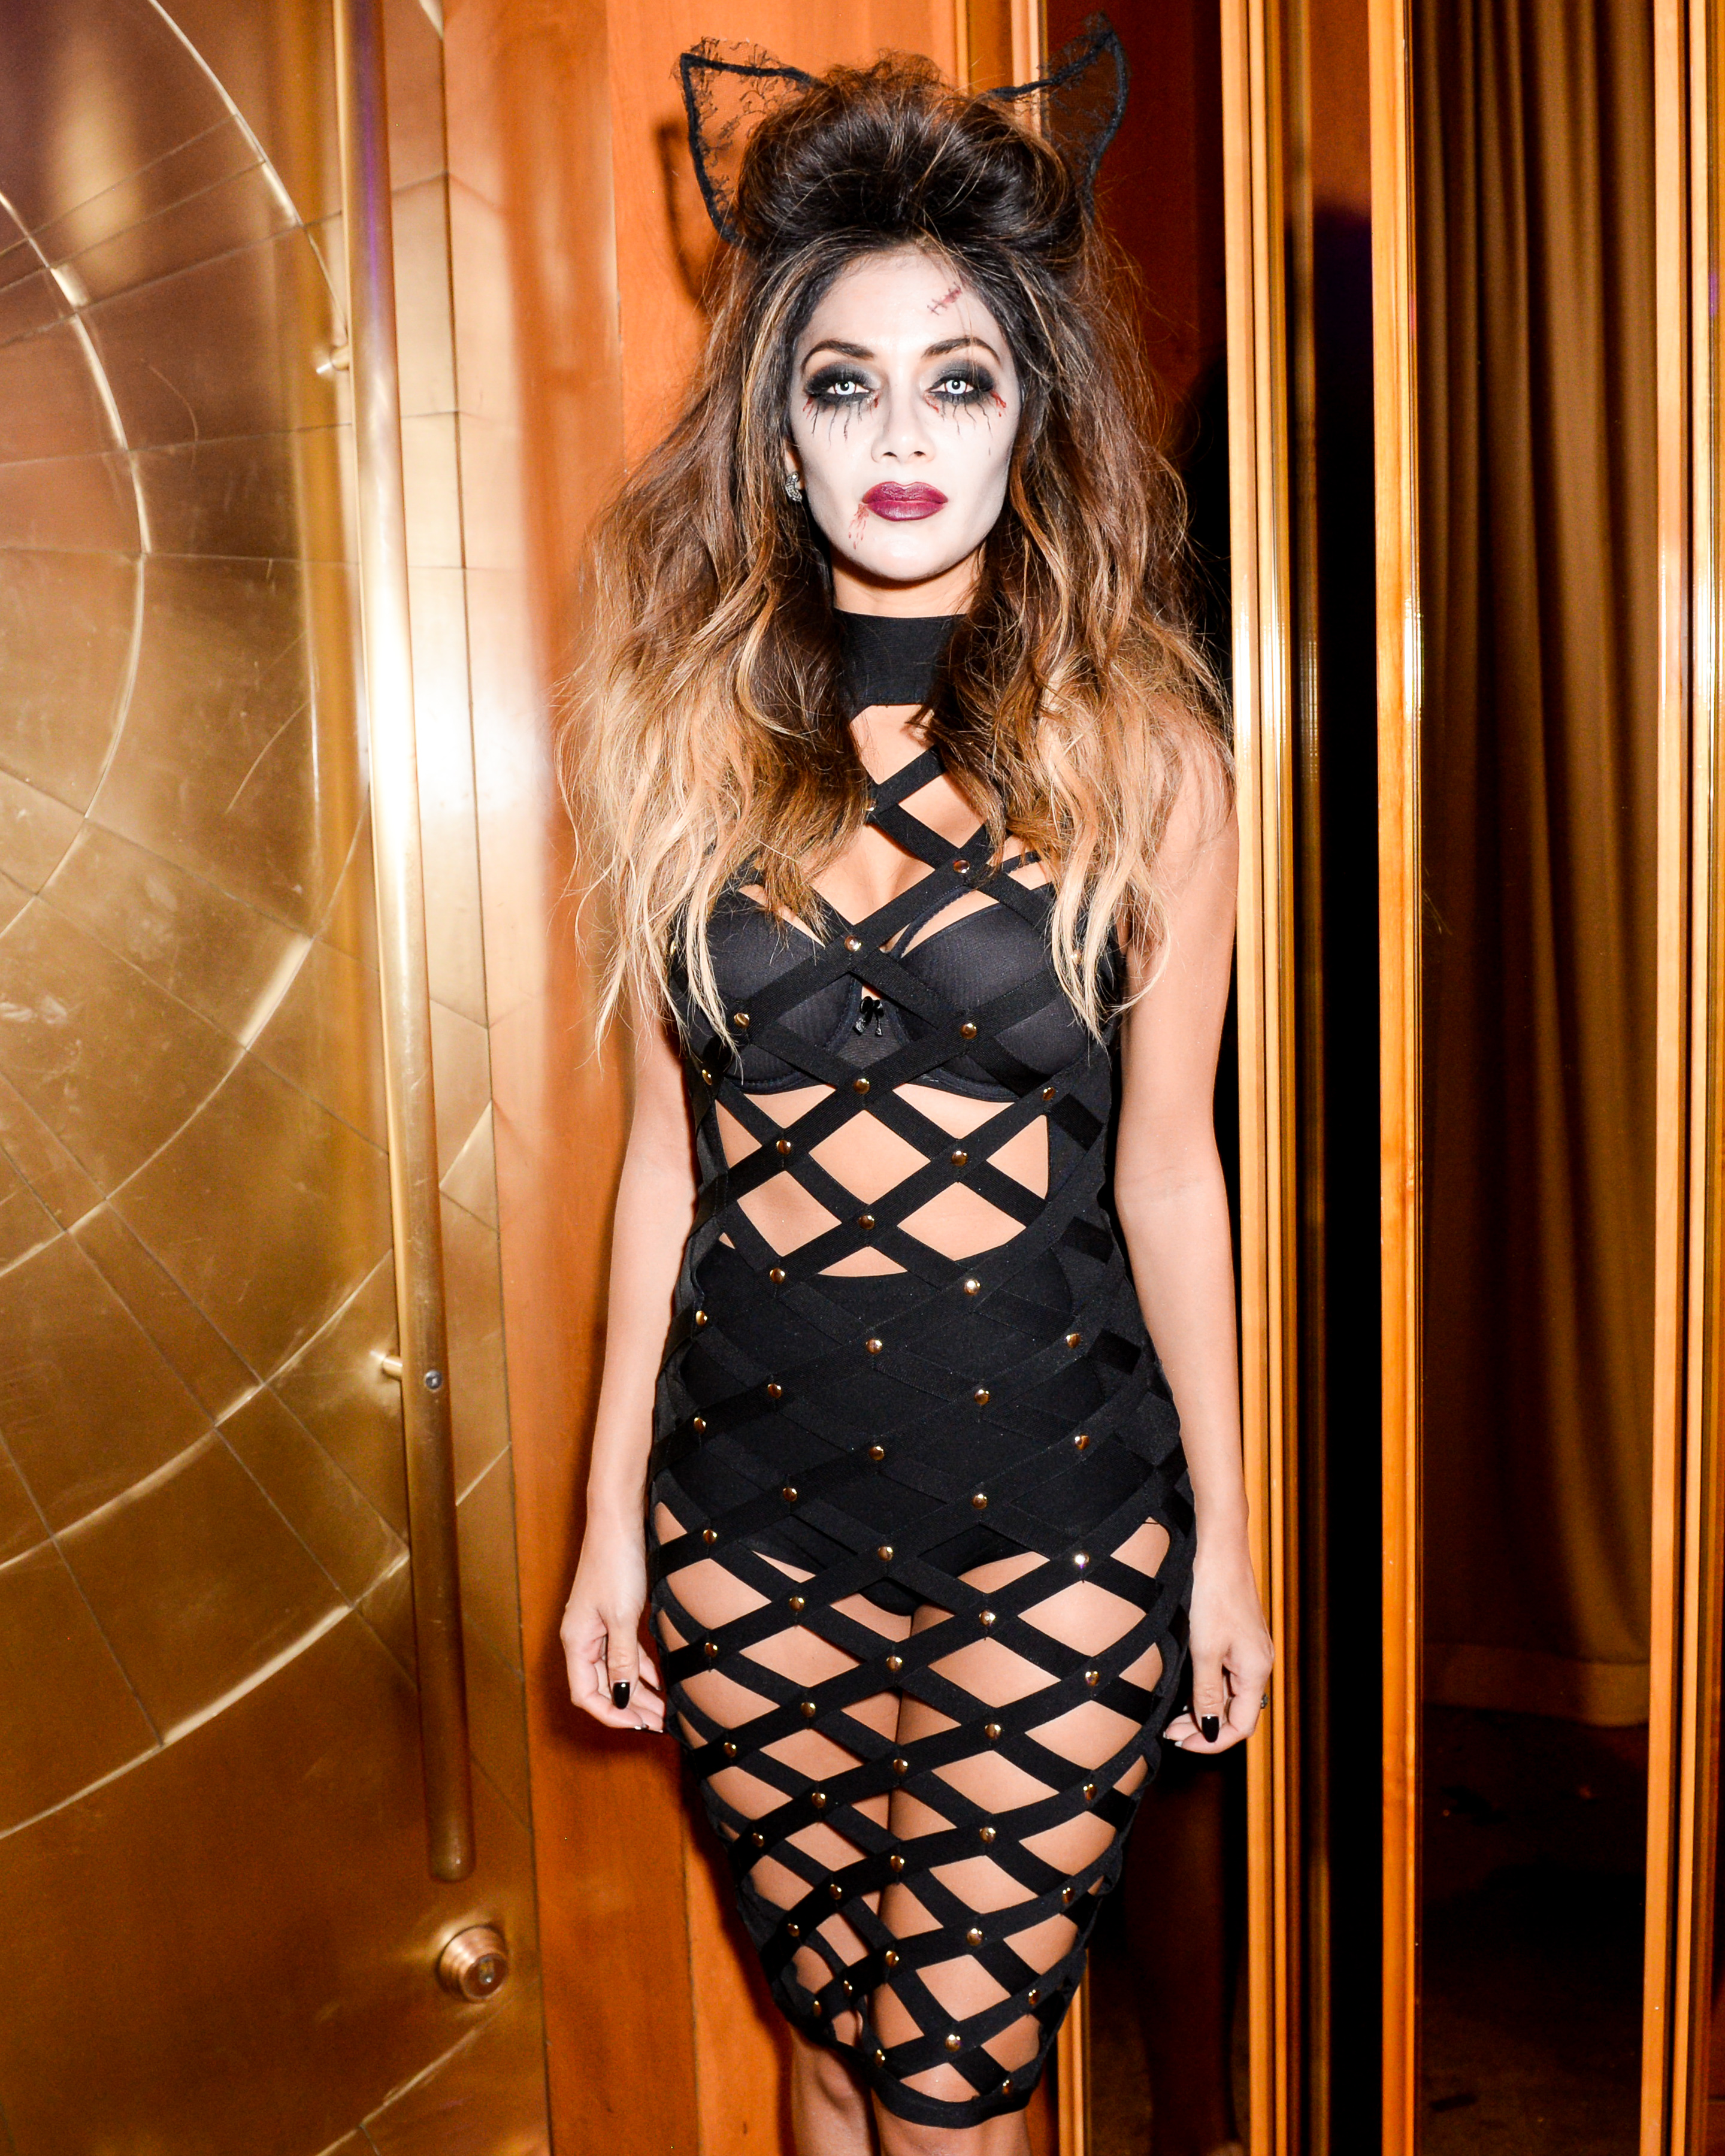 Halloween Partywatch: The Best Costumes of 2015 - Daily ... Jennifer Lopez Linkedin